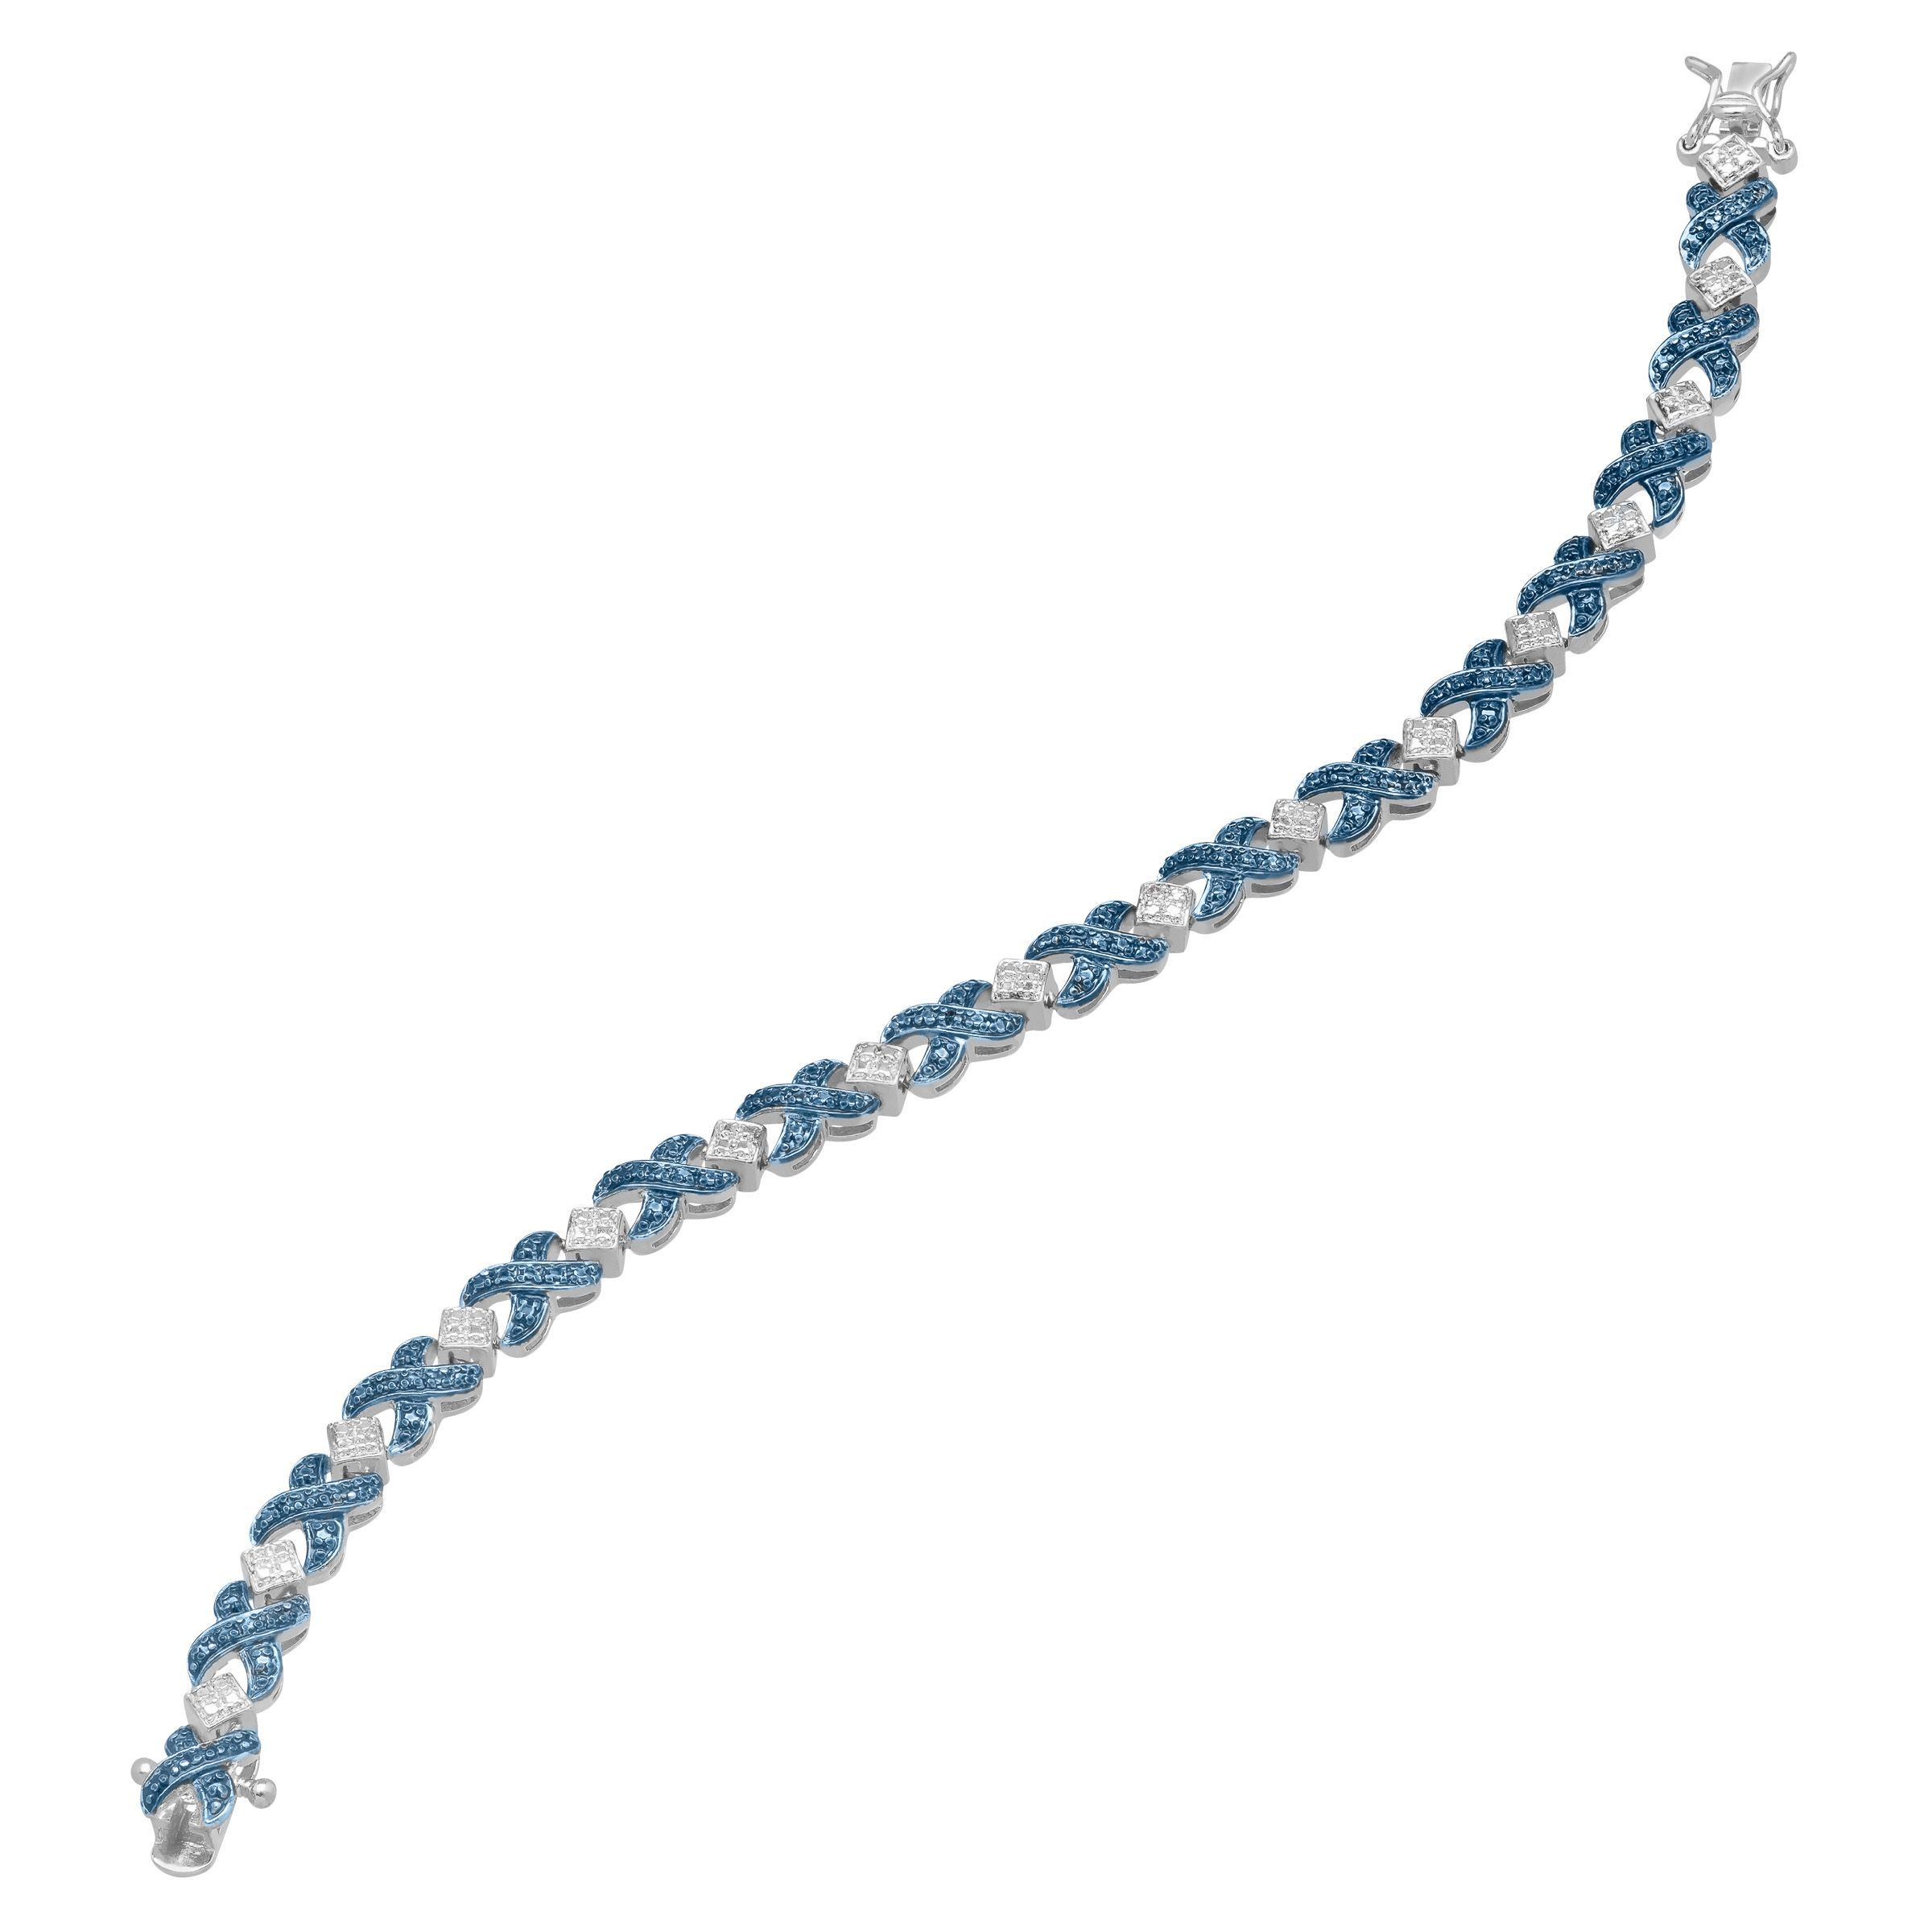 XOXO-Tennis-Bracelet-with-Blue-Diamond-in-Sterling-Silver-Plated-Brass-7-1-4-034 thumbnail 2